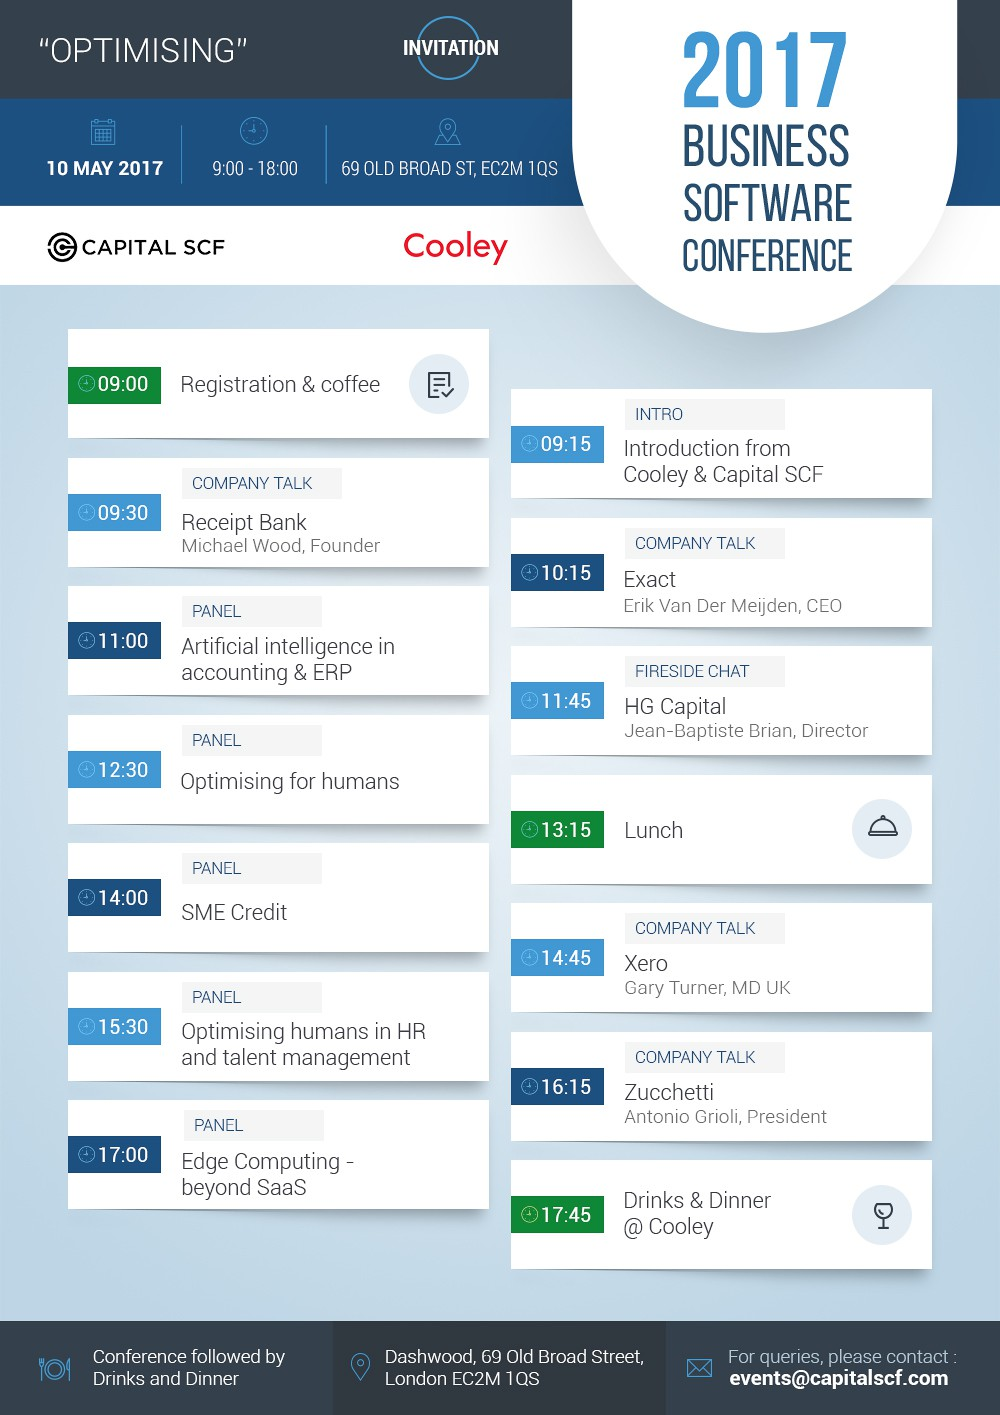 2017 Business Software Conference | *INVITATION*